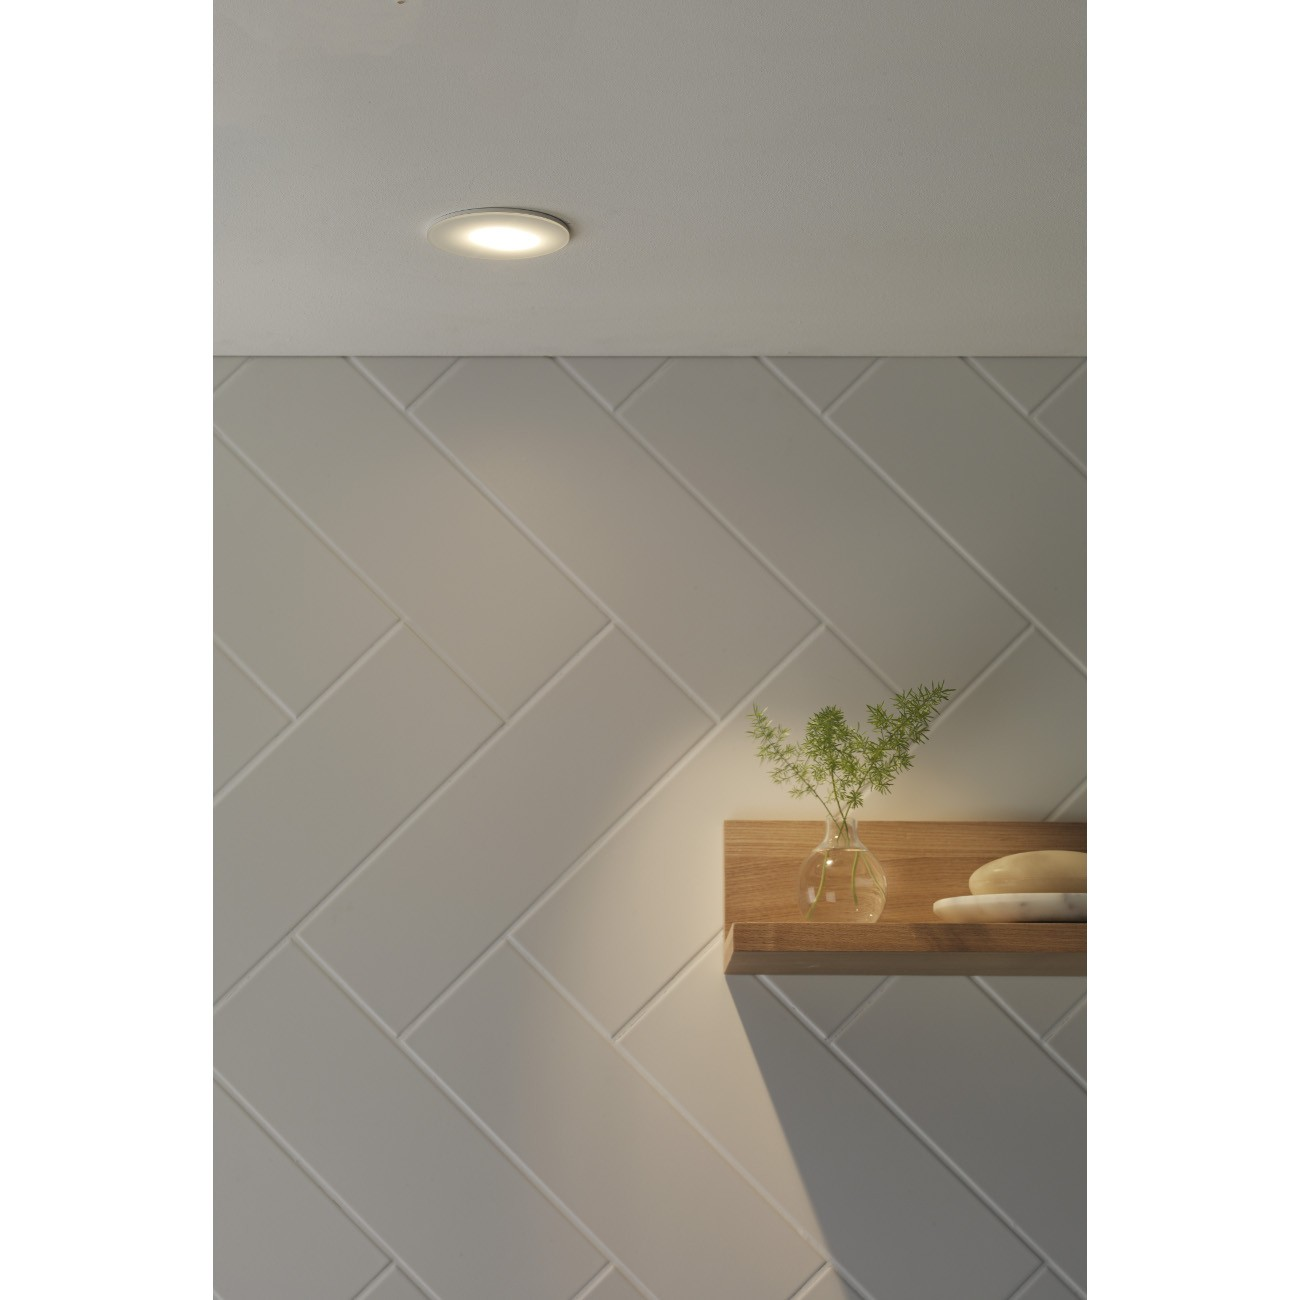 LED Deckeneinbauleuchte MAYFAIR ADJUSTABLE